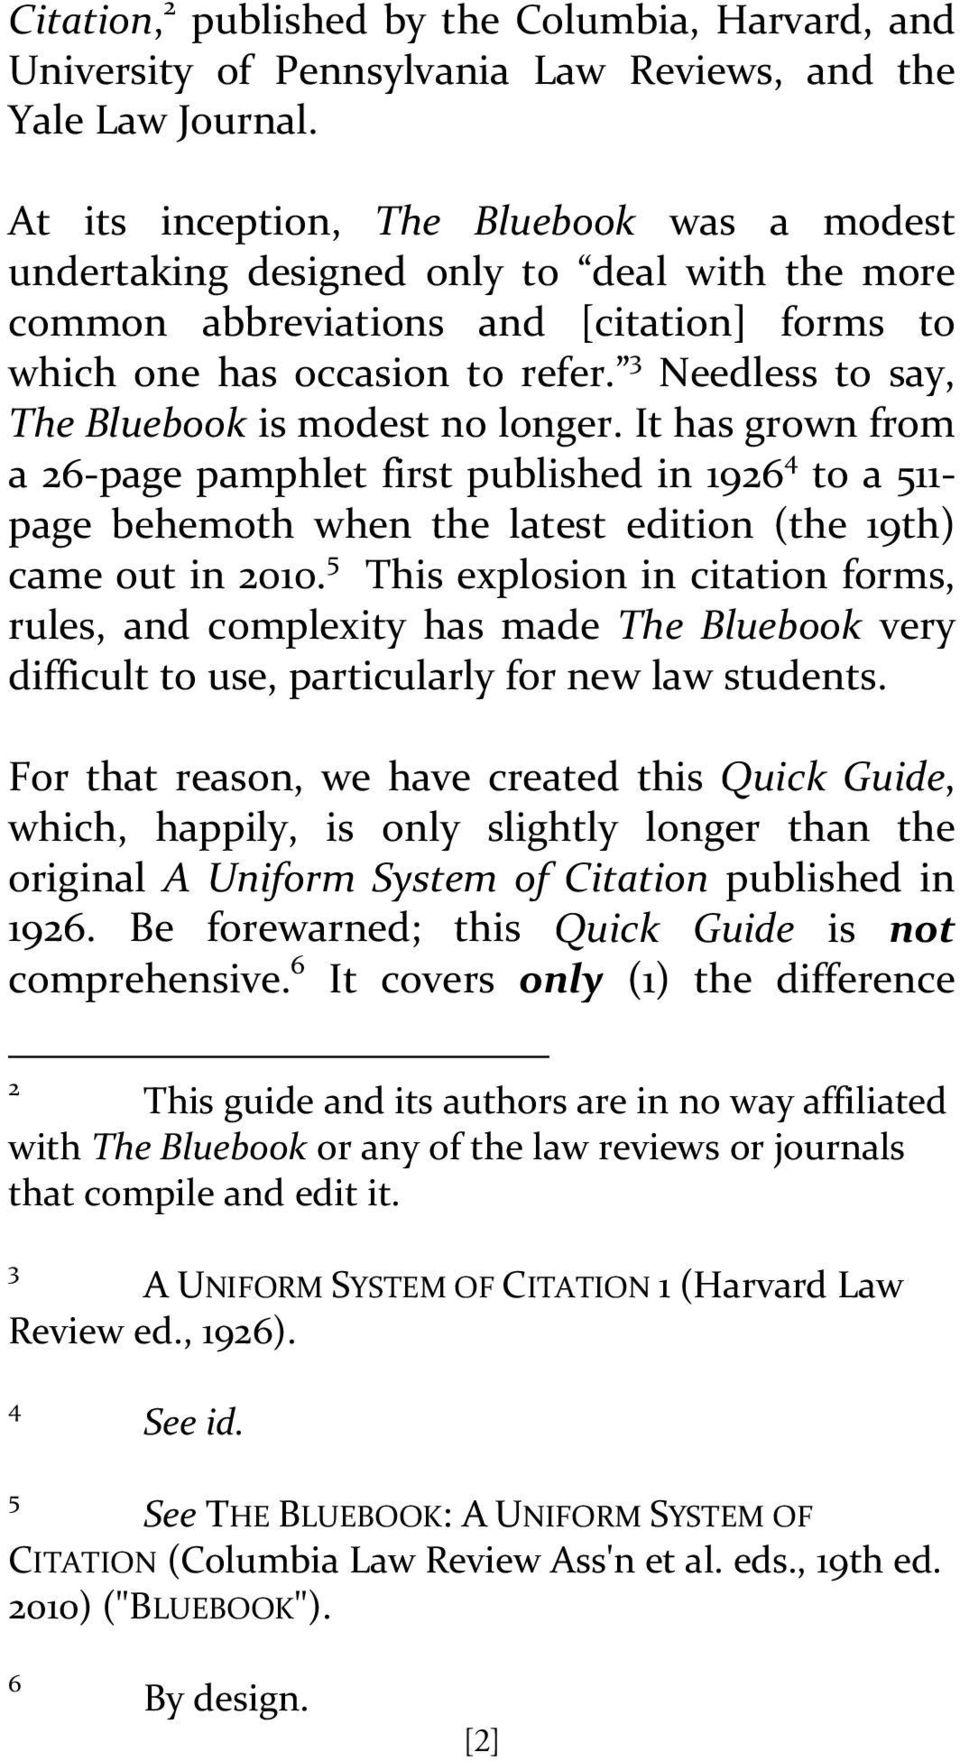 3 Needless to say, The Bluebook is modest no longer. It has grown from a 26 page pamphlet first published in 1926 4 to a 511 page behemoth when the latest edition (the 19th) came out in 2010.